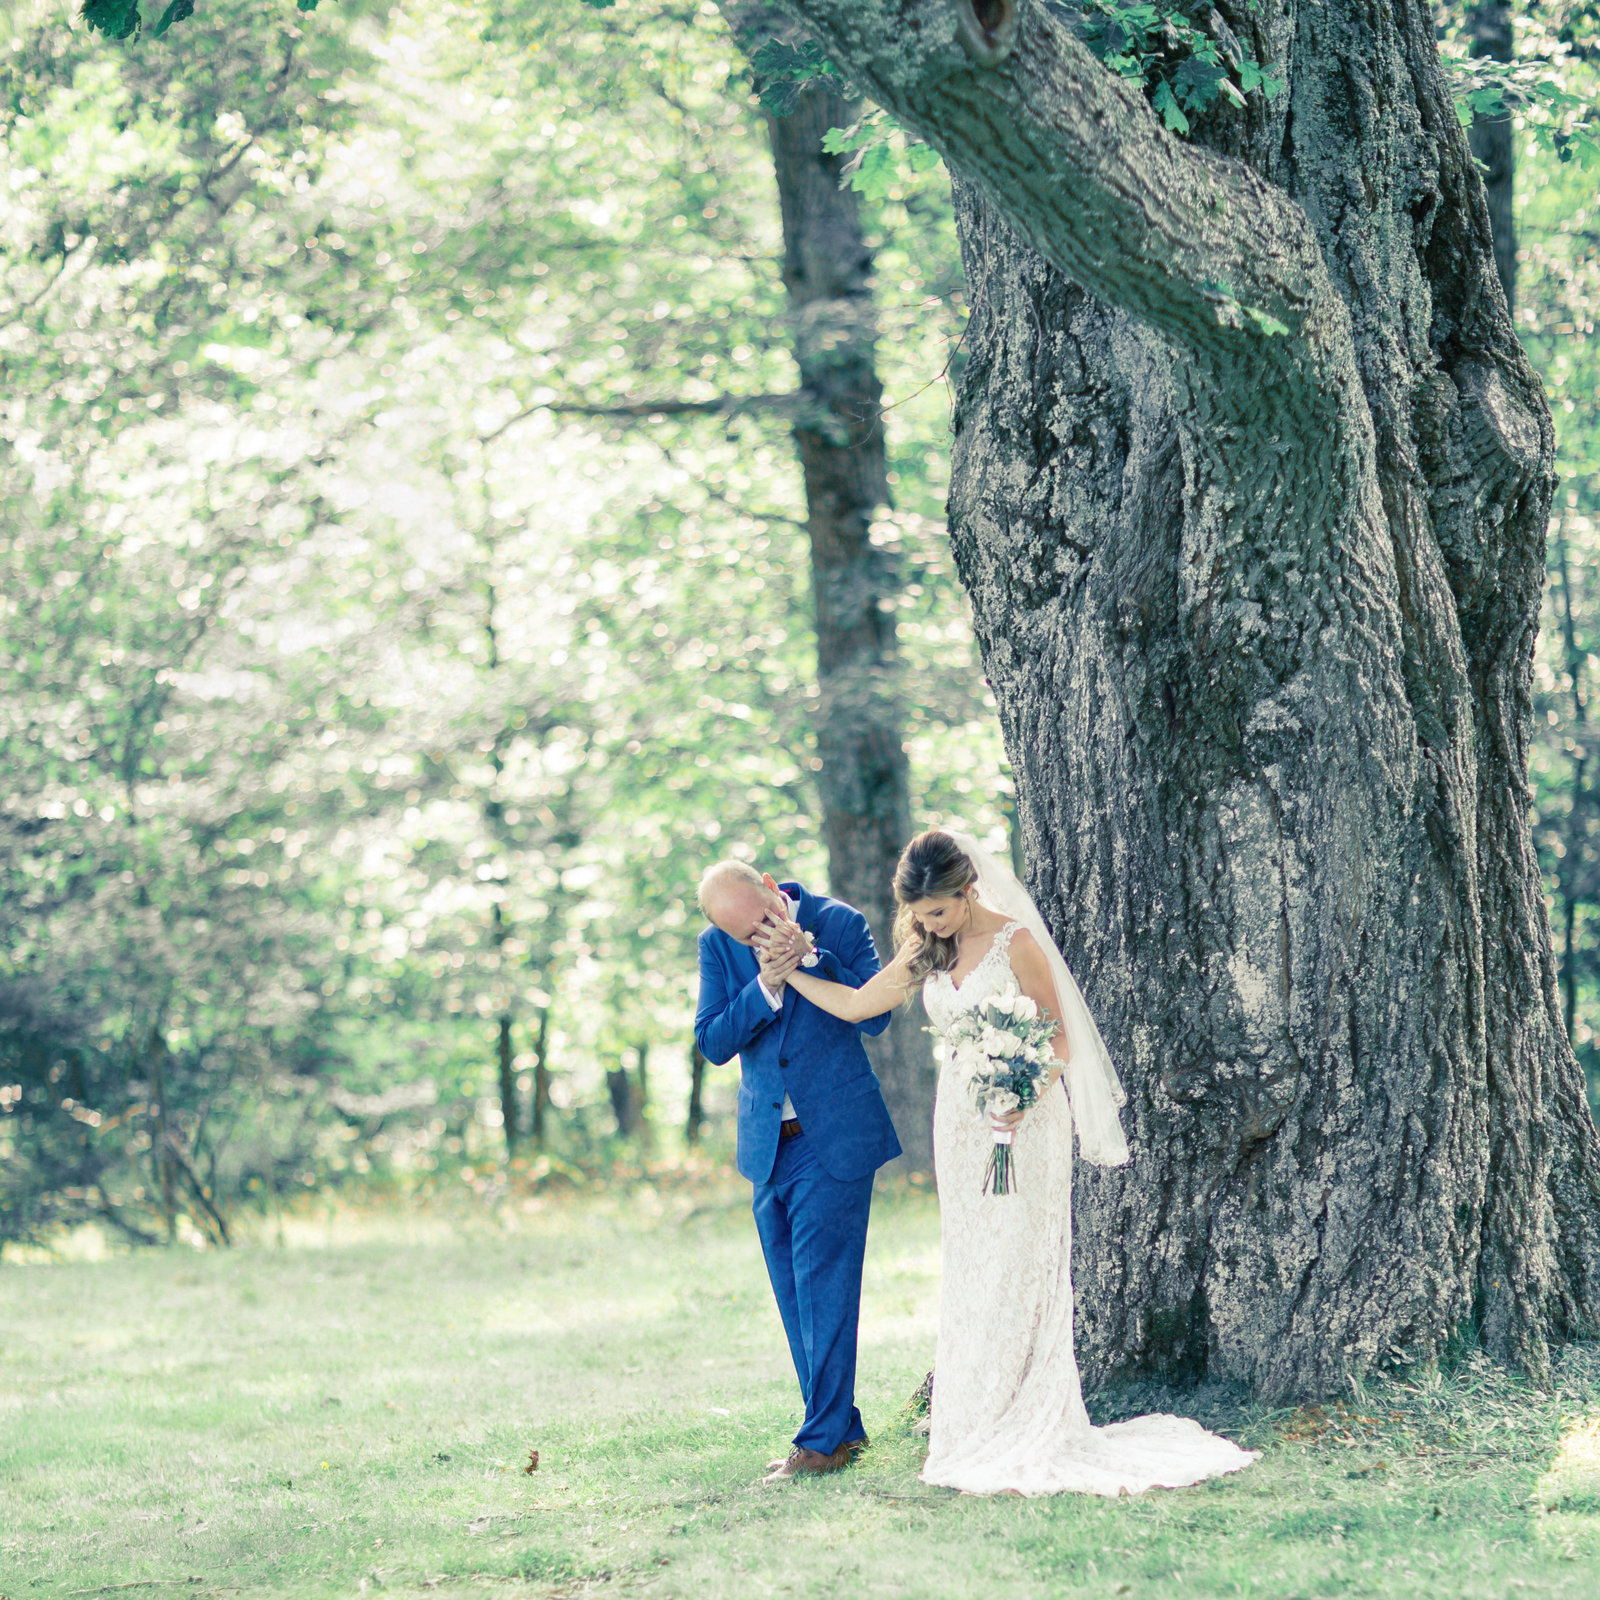 Historic Country Estate Wedding - Carey Institute - New York - Animus-Art Fine Art Editorial Weddings IMG_0749 (2)-Edit